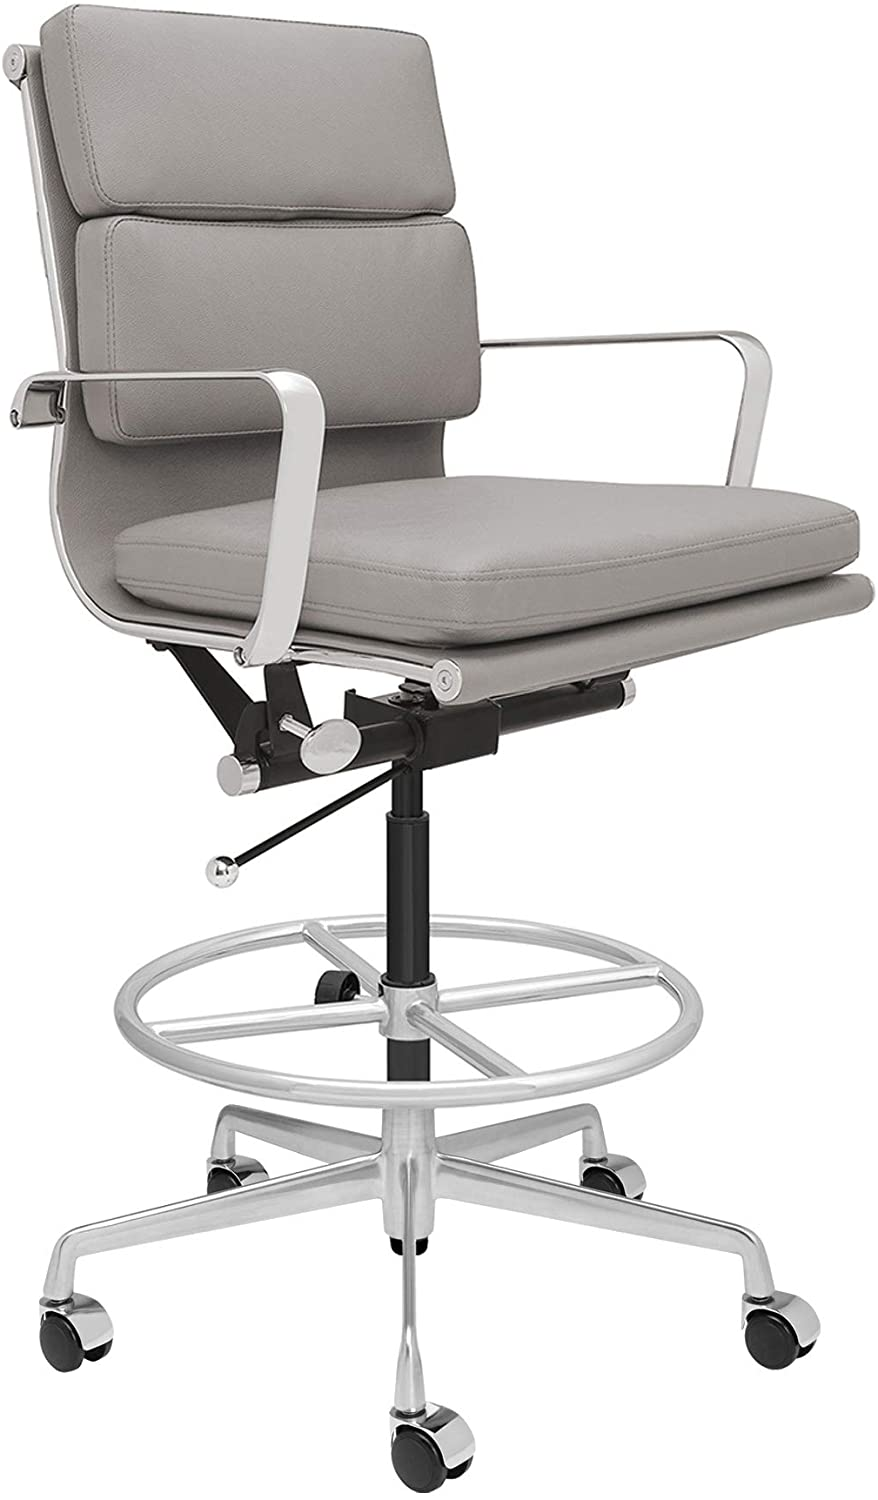 SOHO Soft Pad Drafting Chair - Ergonomically Designed and Commercial Grade Draft Height for Standing Desks (Grey)